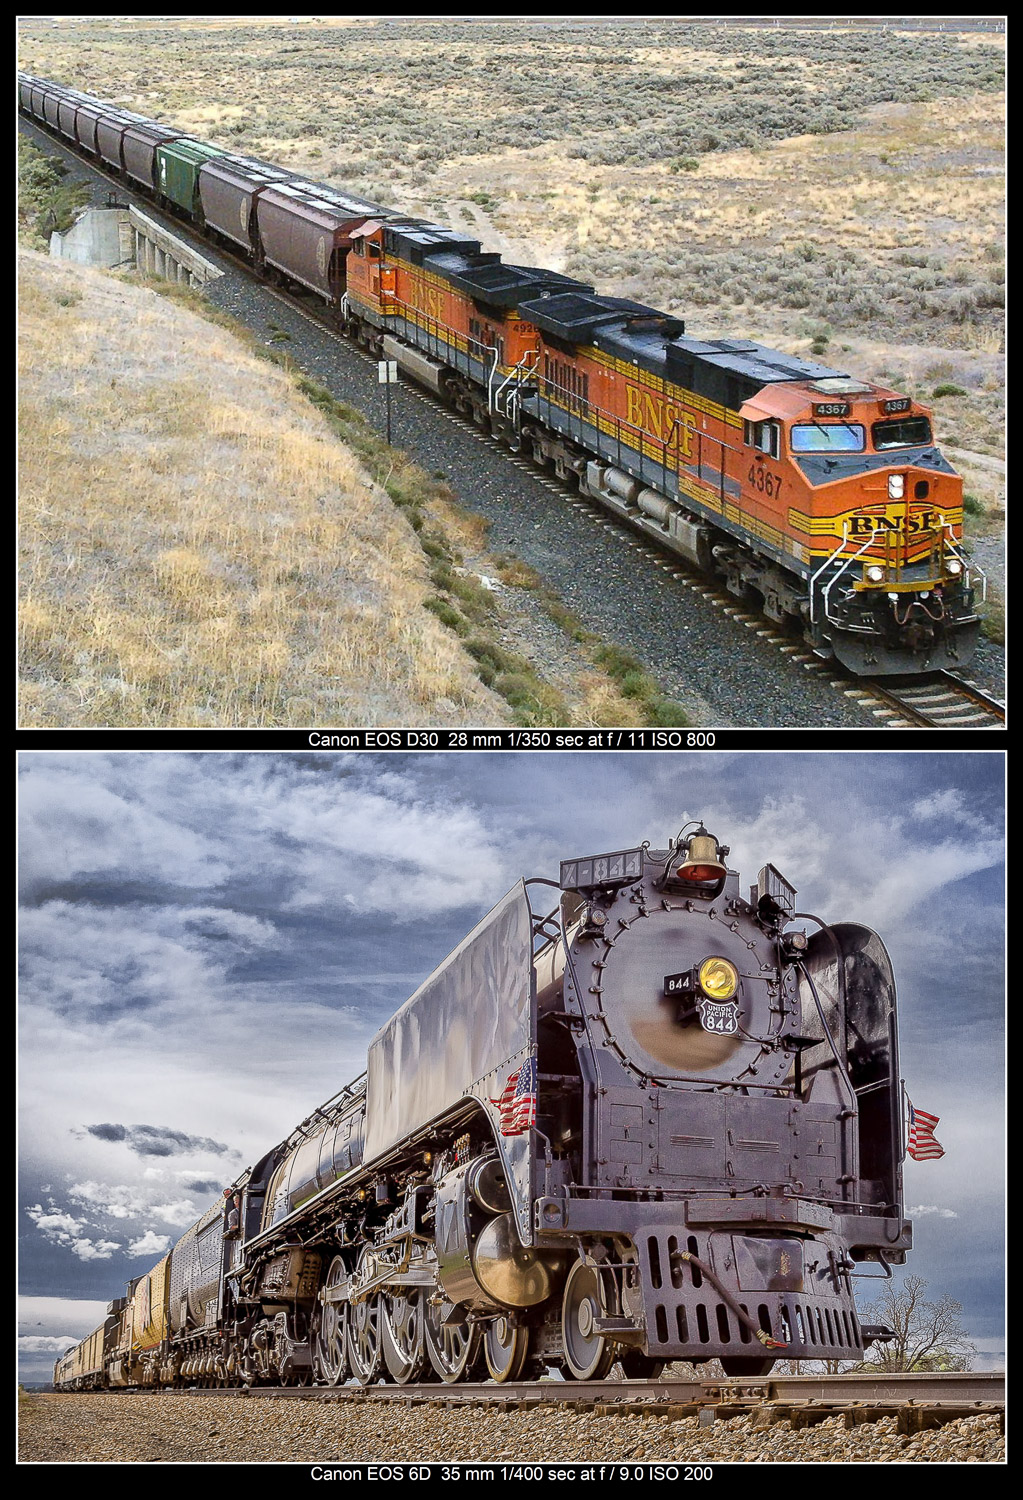 Compare how high and low angles change the way we view these trains.